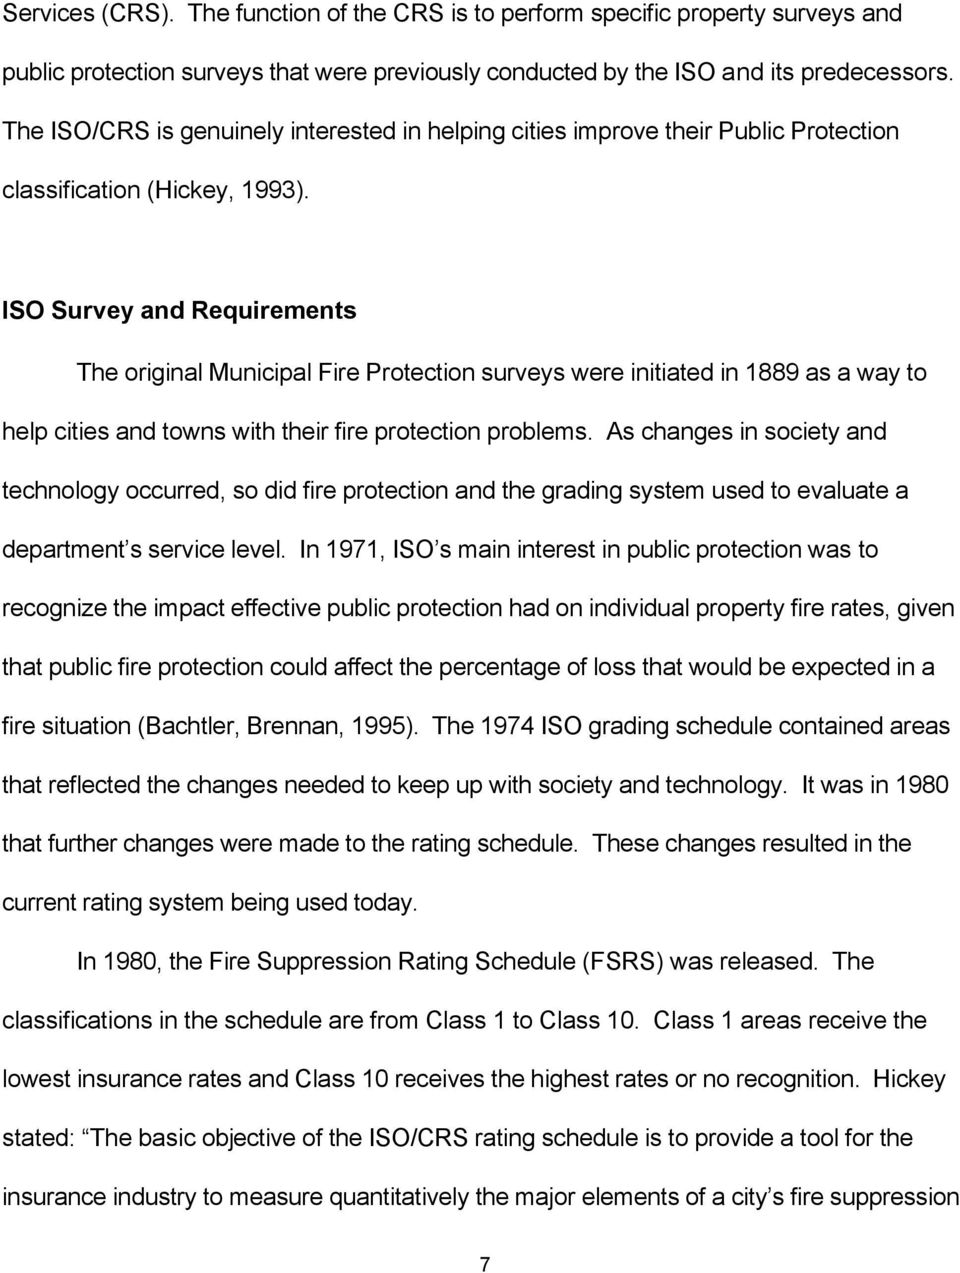 ISO Survey and Requirements The original Municipal Fire Protection surveys were initiated in 1889 as a way to help cities and towns with their fire protection problems.